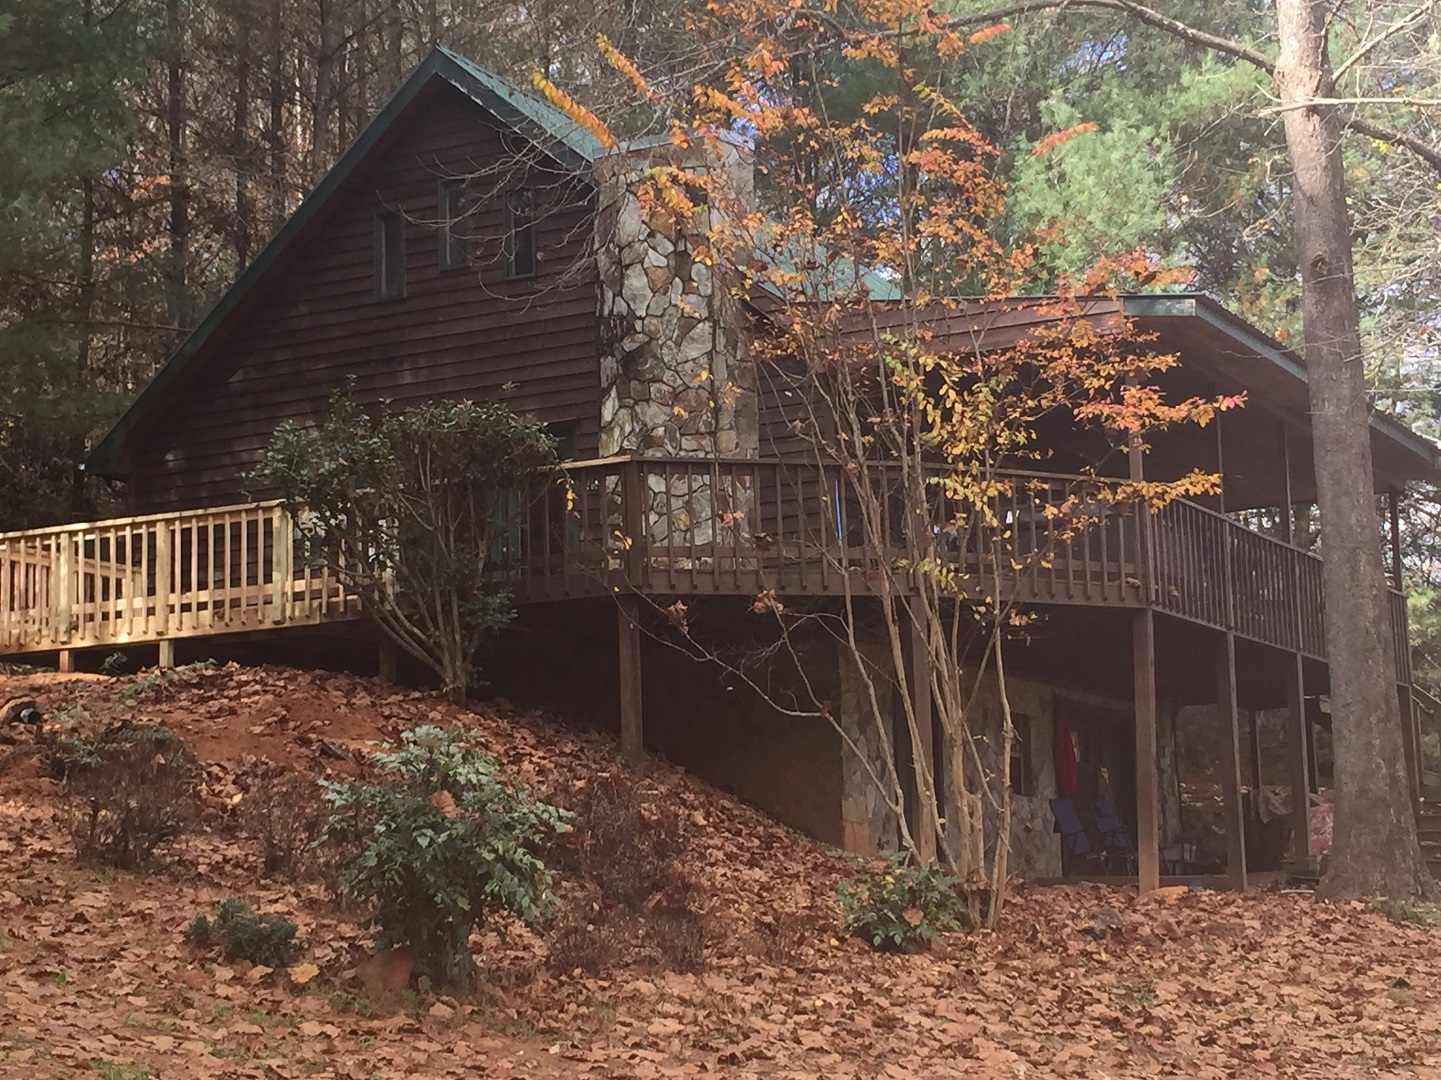 Ocoee river cabin rental 2br 2ba with river access and for Fishing cabin rentals